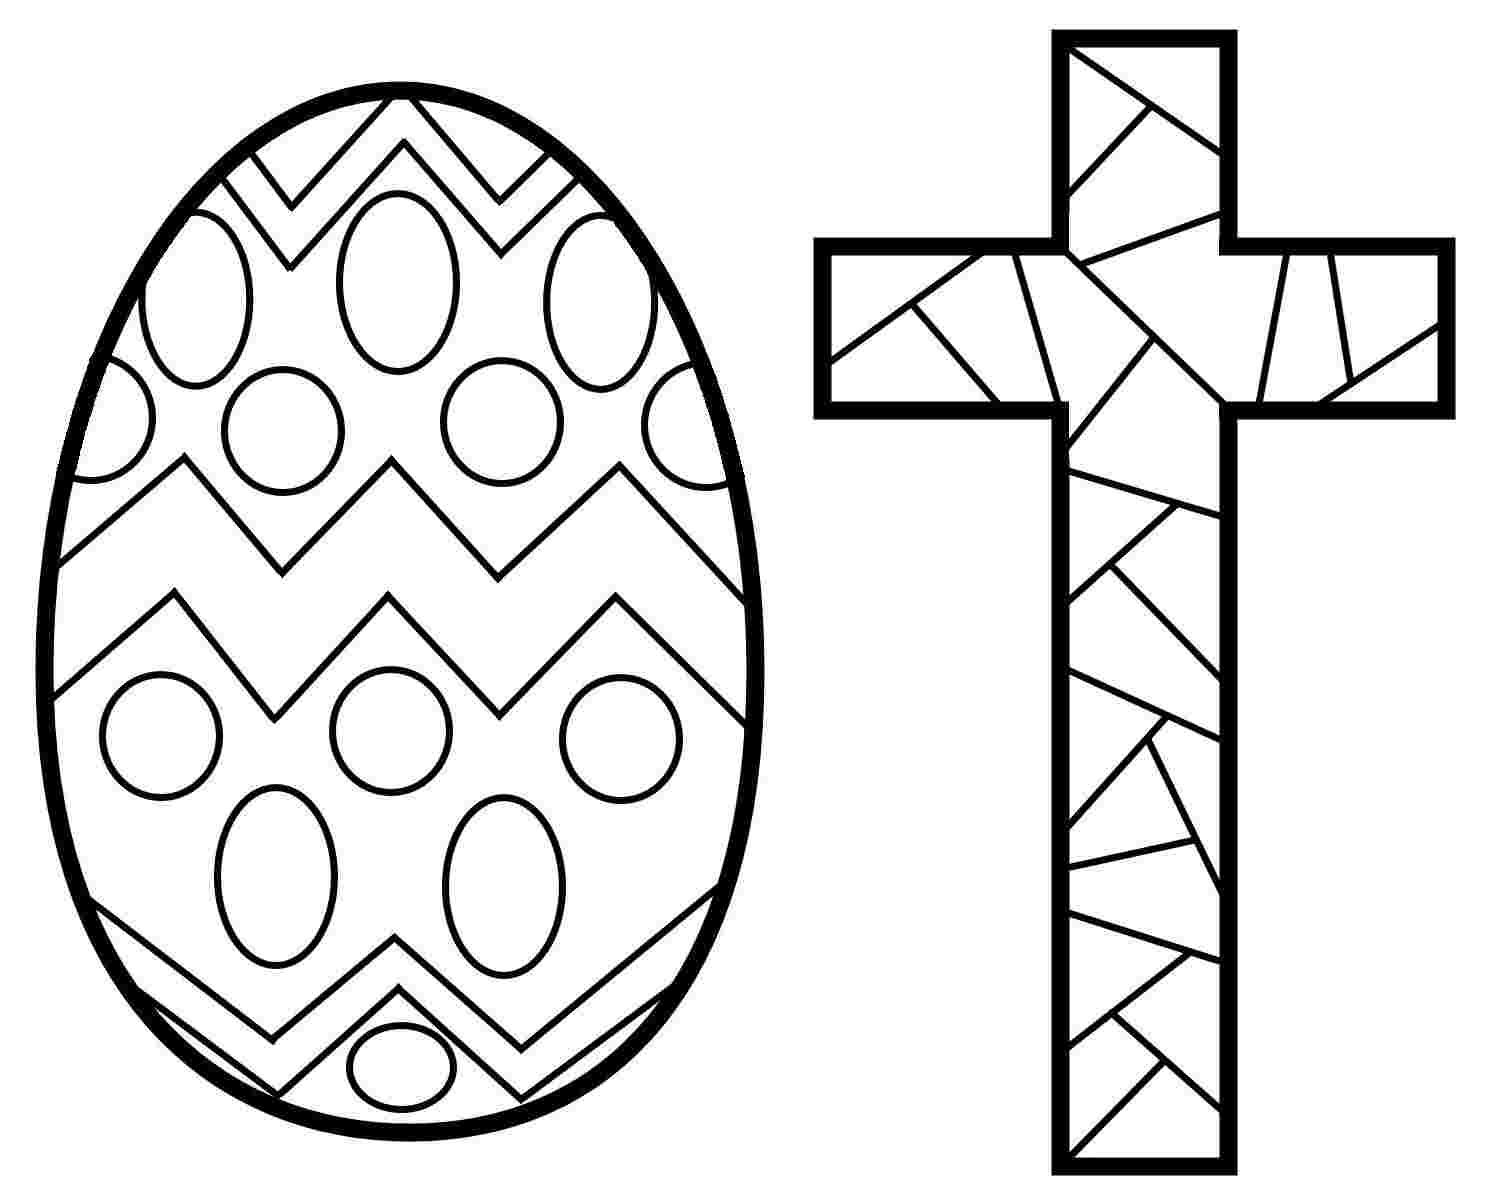 Easter Stained Glass Coloring Pages In 2020 Stain Glass Cross Making Stained Glass Cross Coloring Page